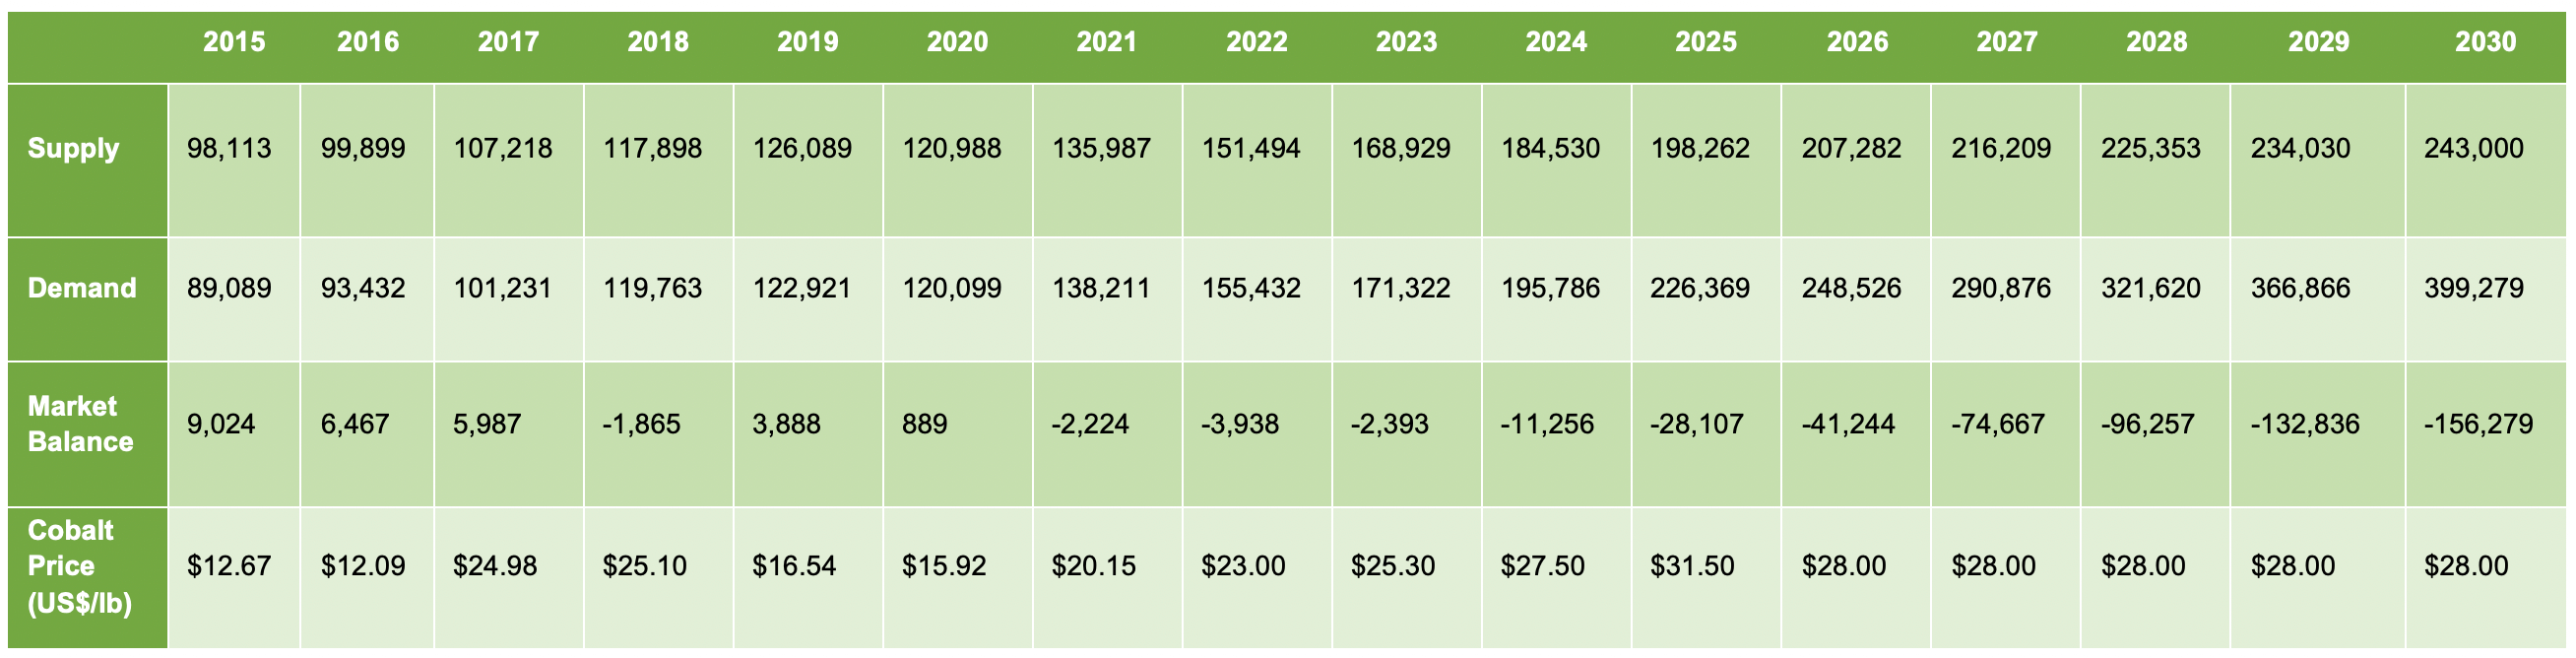 Cobalt Market Balance (t) and Pricing (US$/lb) The Ultimate Guide to the Cobalt Market: 2021 - 2030F